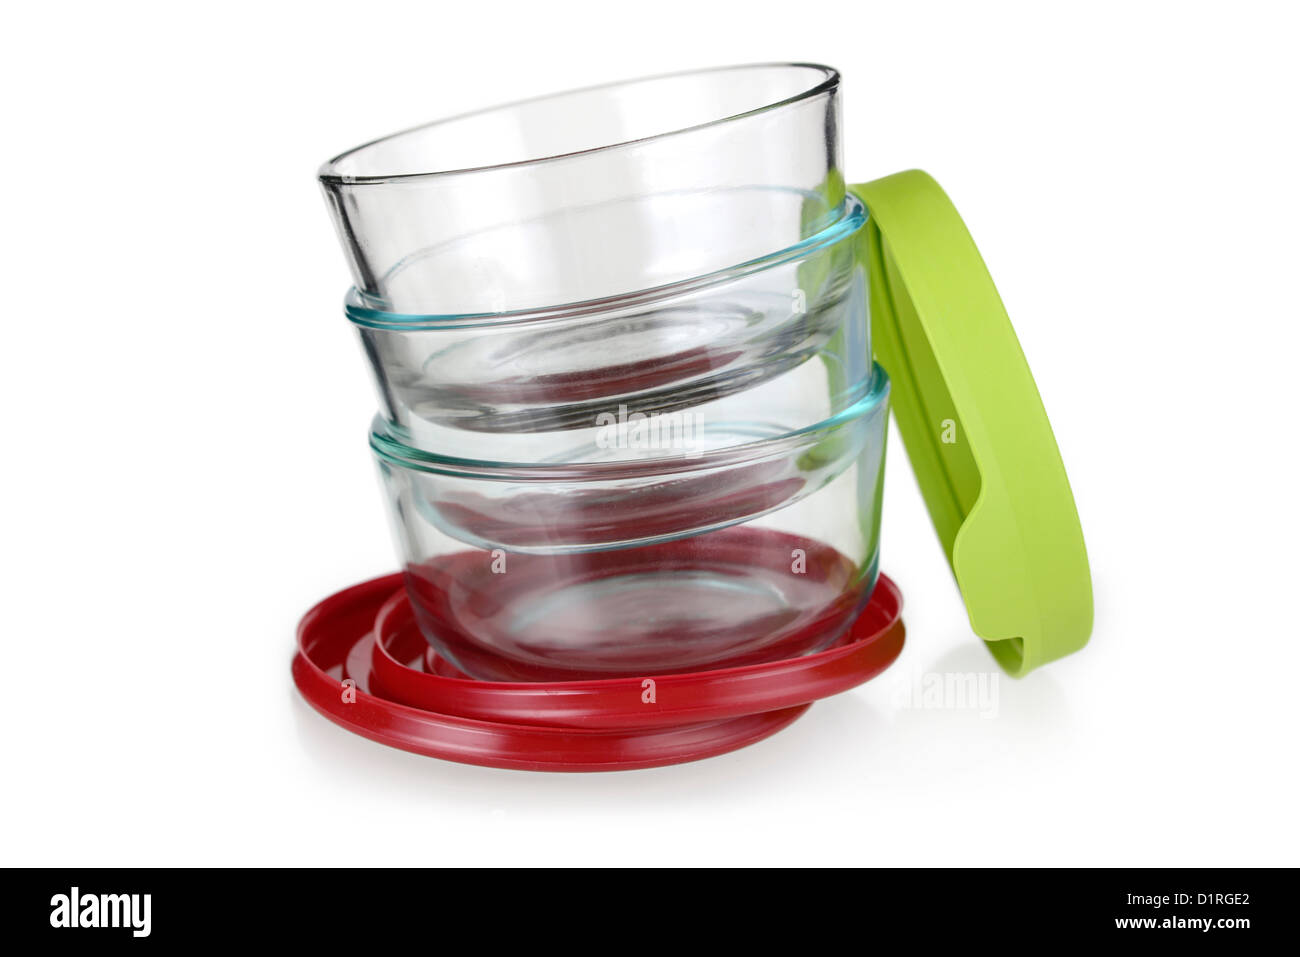 Food Storage containers, glass bowls with plastic lids - Stock Image